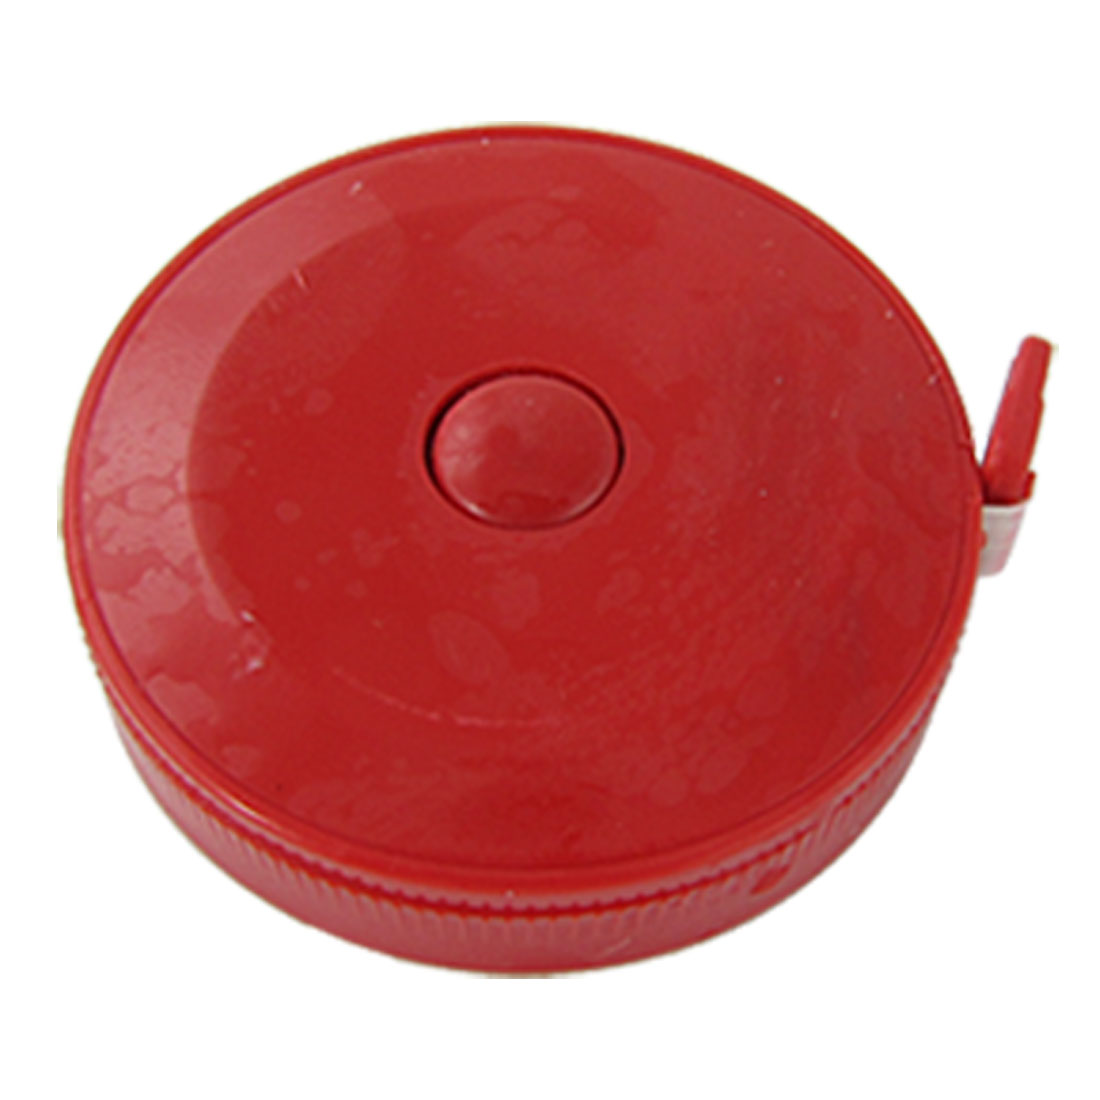 Soft-Plastic-150cm-Length-Measuring-Tape-Red-Shell-Case